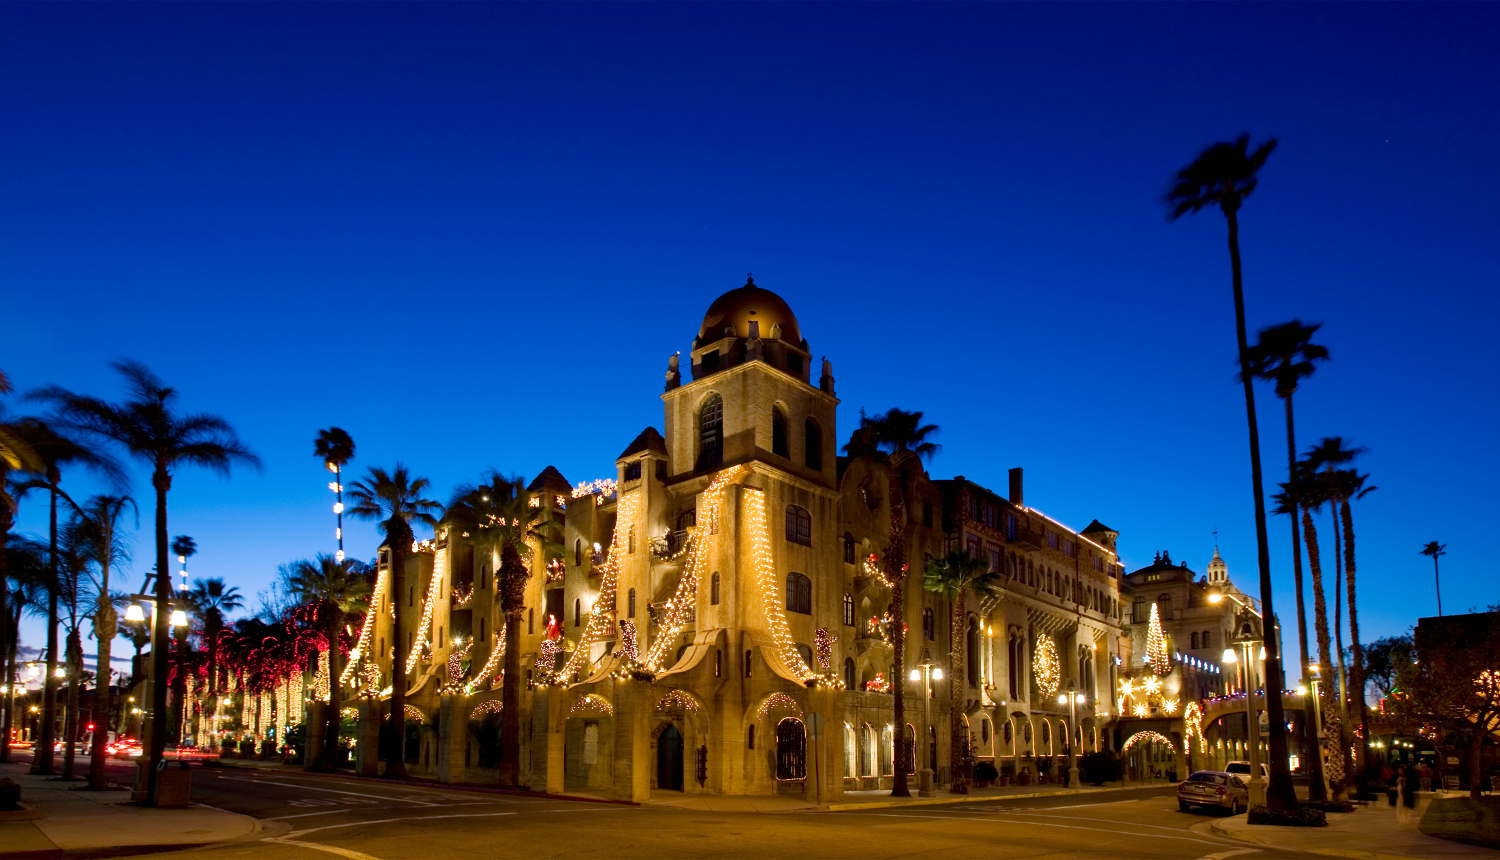 The Mission Inn Hotel Spa